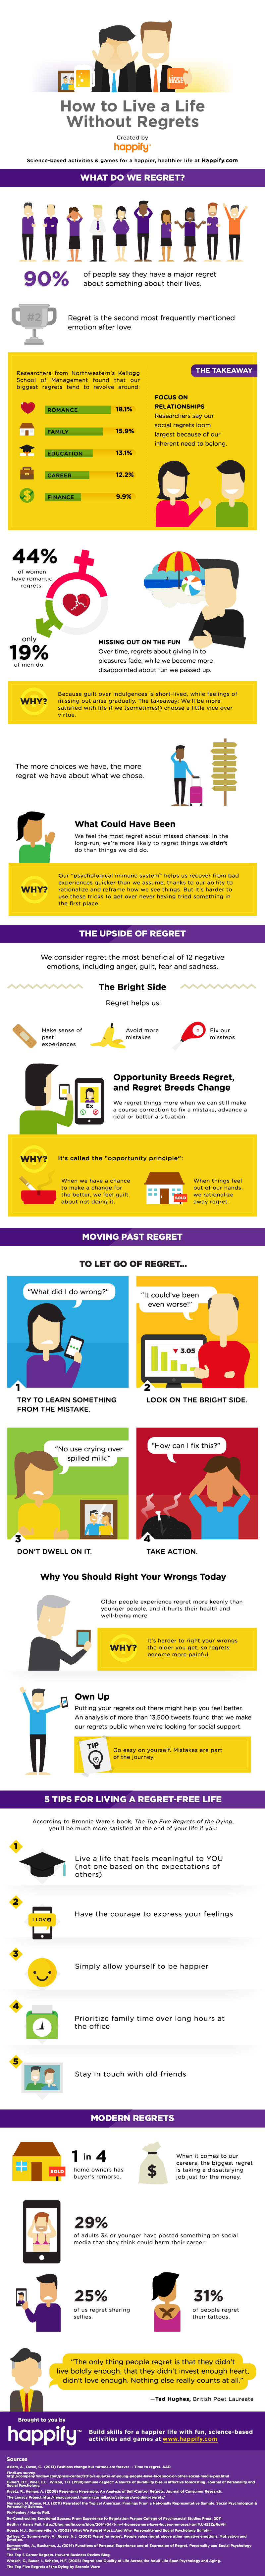 regrets-happify-infographic